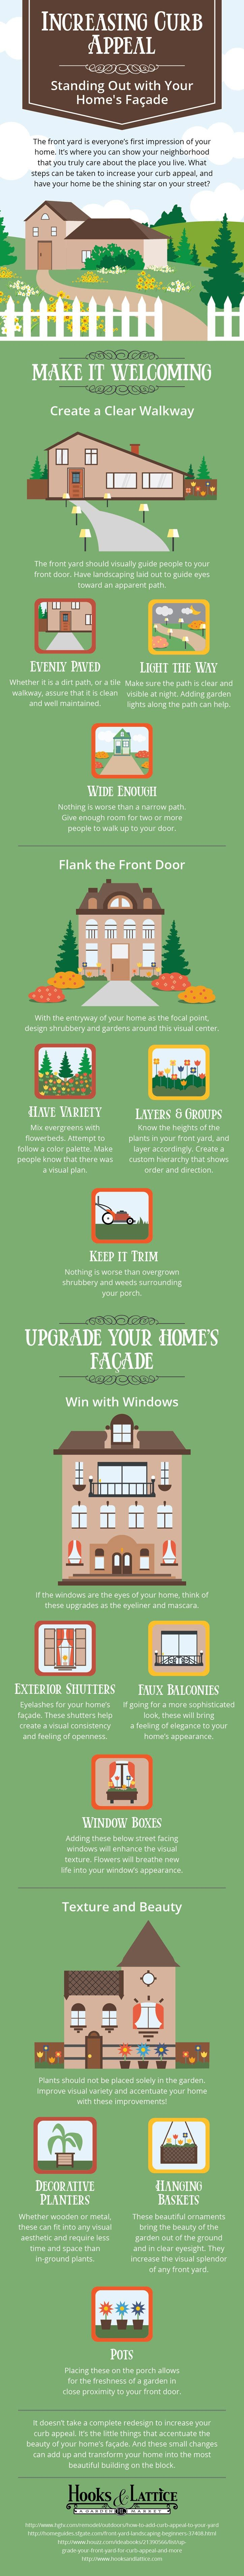 Increase your Curb Appeal Infographic